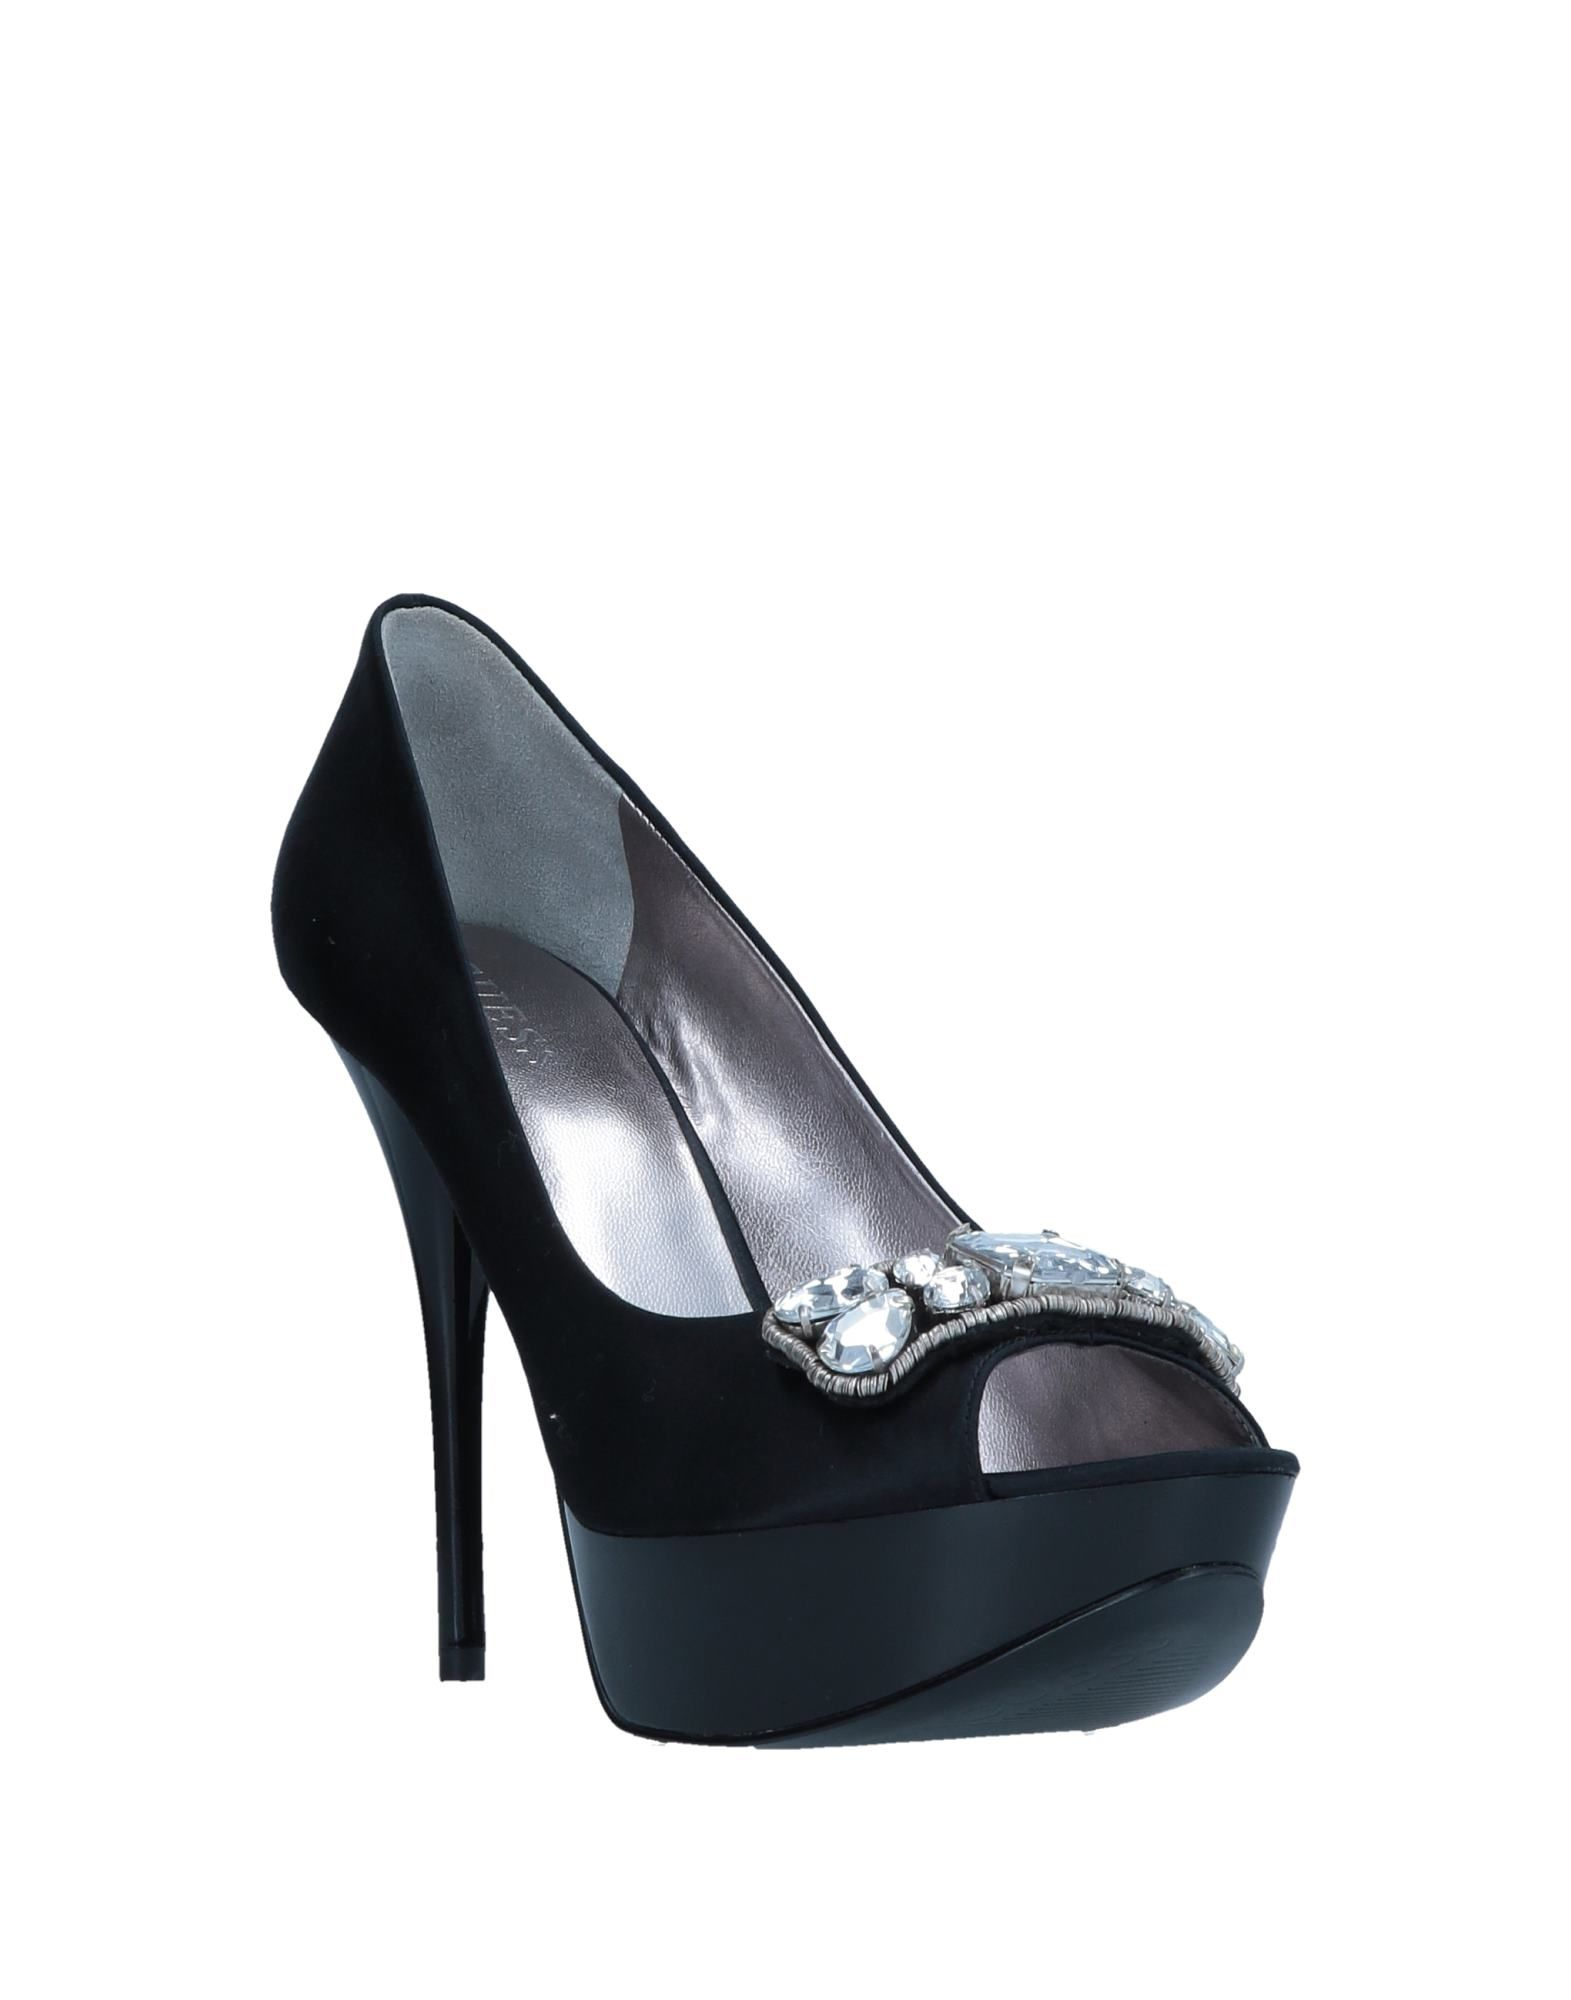 Guess Pumps Pumps Guess Damen  11547277MG 4d0c16